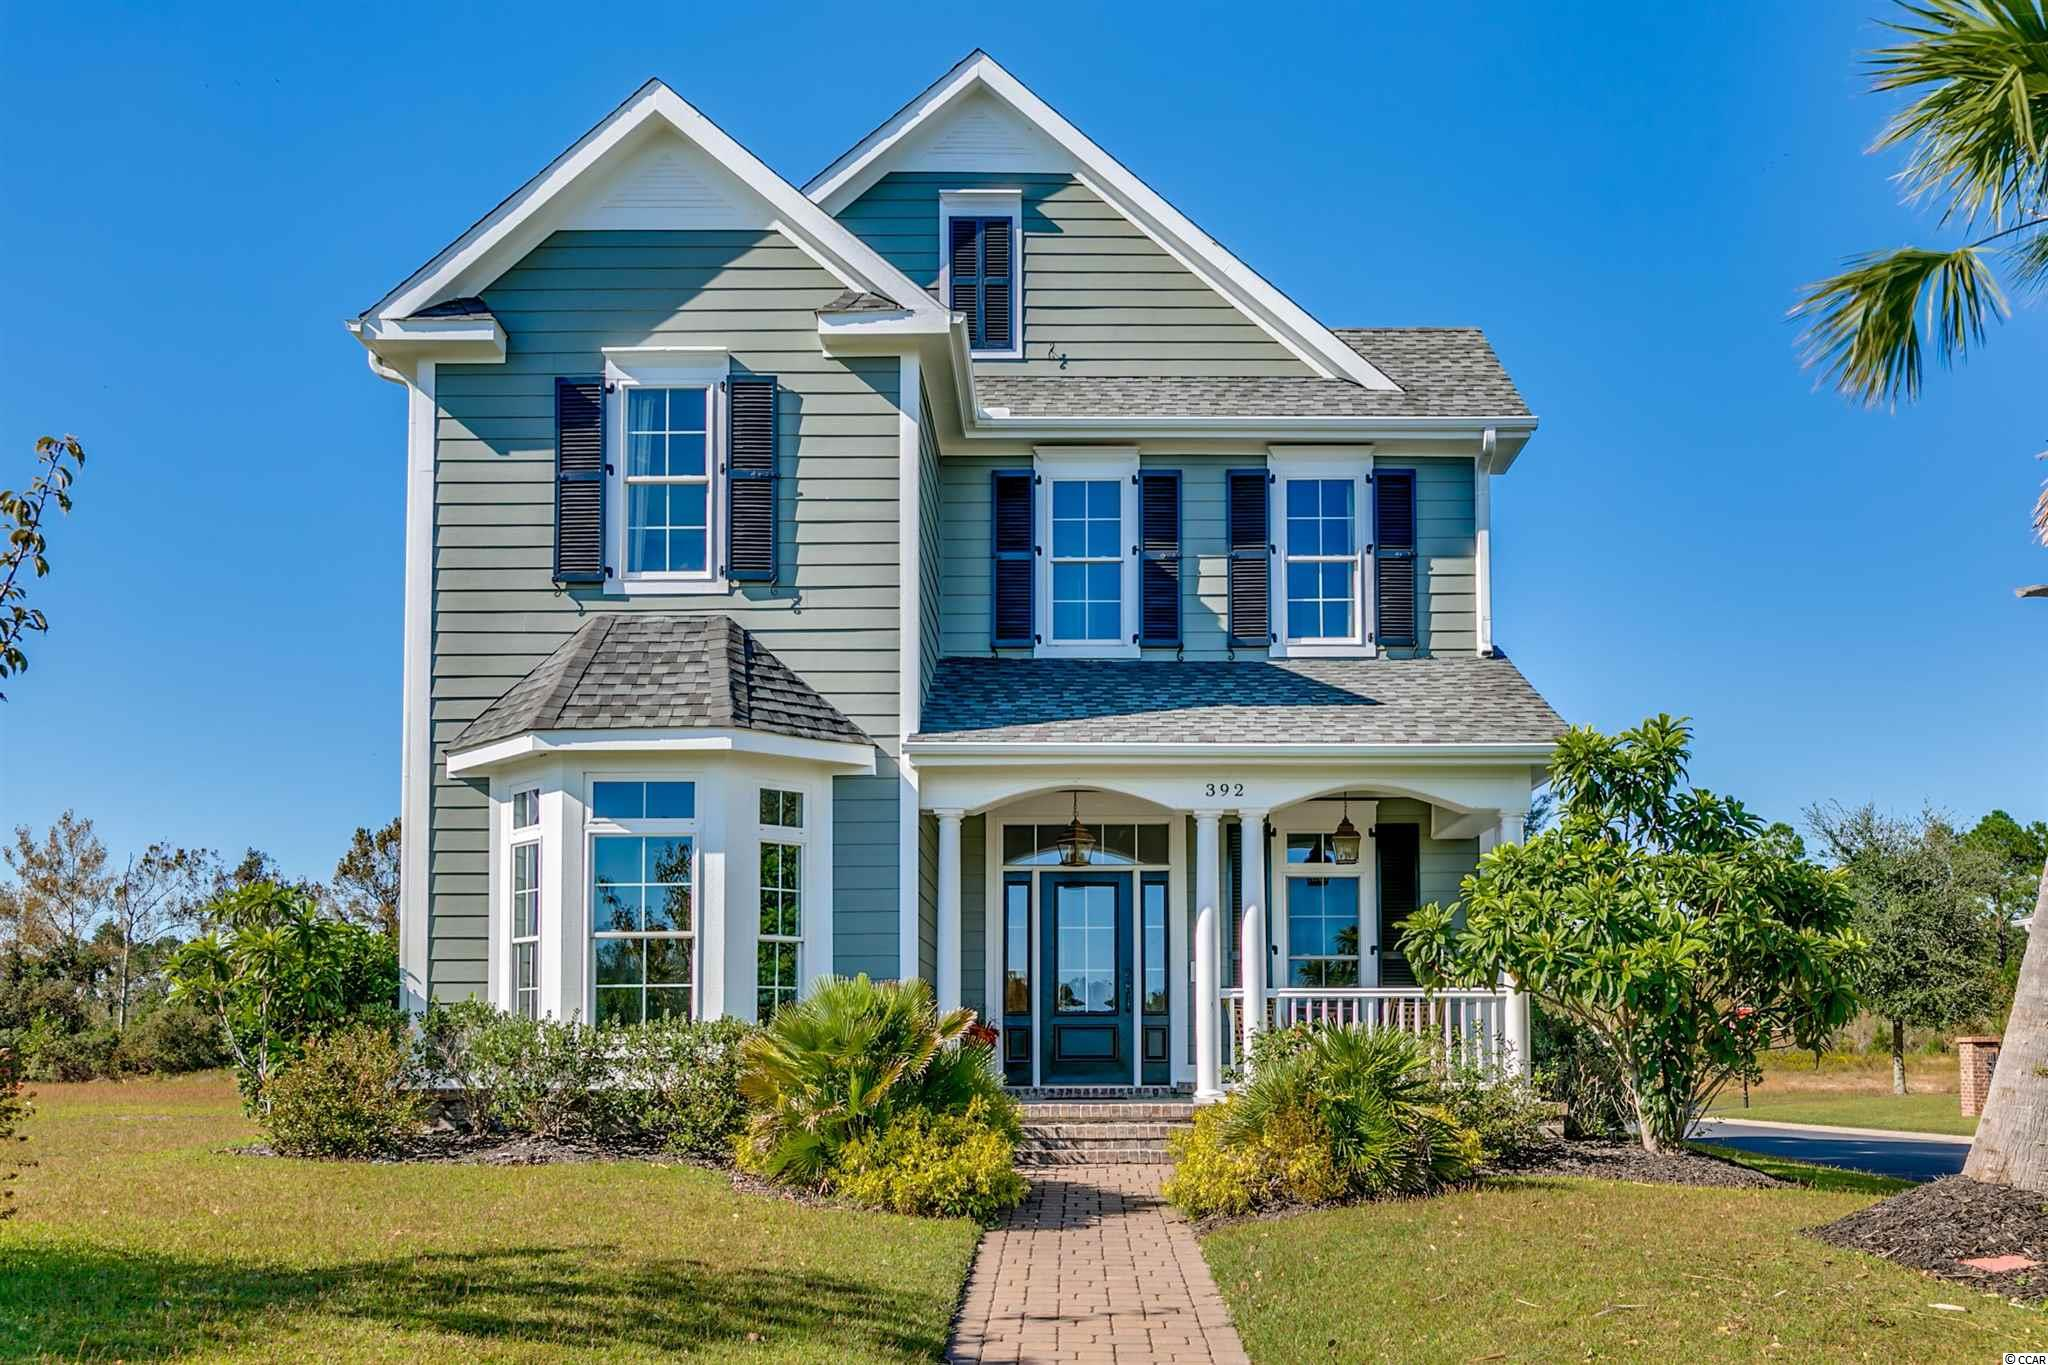 If you are looking for a high end, top quality home in a convenient gated neighborhood, look no further! No corners were cut whenbuilding this custom, one of a kind, Charleston Style beauty. This home is situated on one of only 4 oversized corner lots and isacross the street from the Intracoastal Waterway. The exterior is hardy plank and brick and offers operable shutters in the front ofthe home. Inside you will find South American Walnut hardwood floors (recently refinished) throughout all living areas andtravertine and marble flooring in the laundry room and baths. Bedrooms offer carpet. The layout and flow of this home isexceptional with 10 ft. ceilings on the first floor and 9 ft. on the second floor. From the front door you walk into a beautiful entry/sitting area. To the left you will find a large formal dining room that transitions to the kitchen with a beautiful wet bar/Butlers pantry.The kitchen overlooks the breakfast nook and great room and has solid wood cabinets with slam proof drawers, SS appliances,and beautiful granite countertops. The great room offers a fireplace, surround sound and many recessed lights. The Carolinaroom is also on the main living level with french doors leading to the private courtyard. The courtyard is fenced-in with gas line tothe grill and electricity for an outdoor fountain. The separate first floor laundry room offers custom solid wood cabinetry and graniteas well as a sink and an abundance of cabinets. Above the garage you will find an oversized bonus room/4th bedroom with 1/2bath. A second staircase will lead you to the the Master Suite and 2 additional nice sized bedrooms. There are 3 closets in theupstairs landing as well as a linen closet in the 2nd full bath. The master suite is complete with his and hers custom closets ( allclosets in the home are custom), a floor to ceiling travertine shower and large jacuzzi tub. The second bath offers high endfinishes as well, including a tub with tiled backsplash, granite, traverti